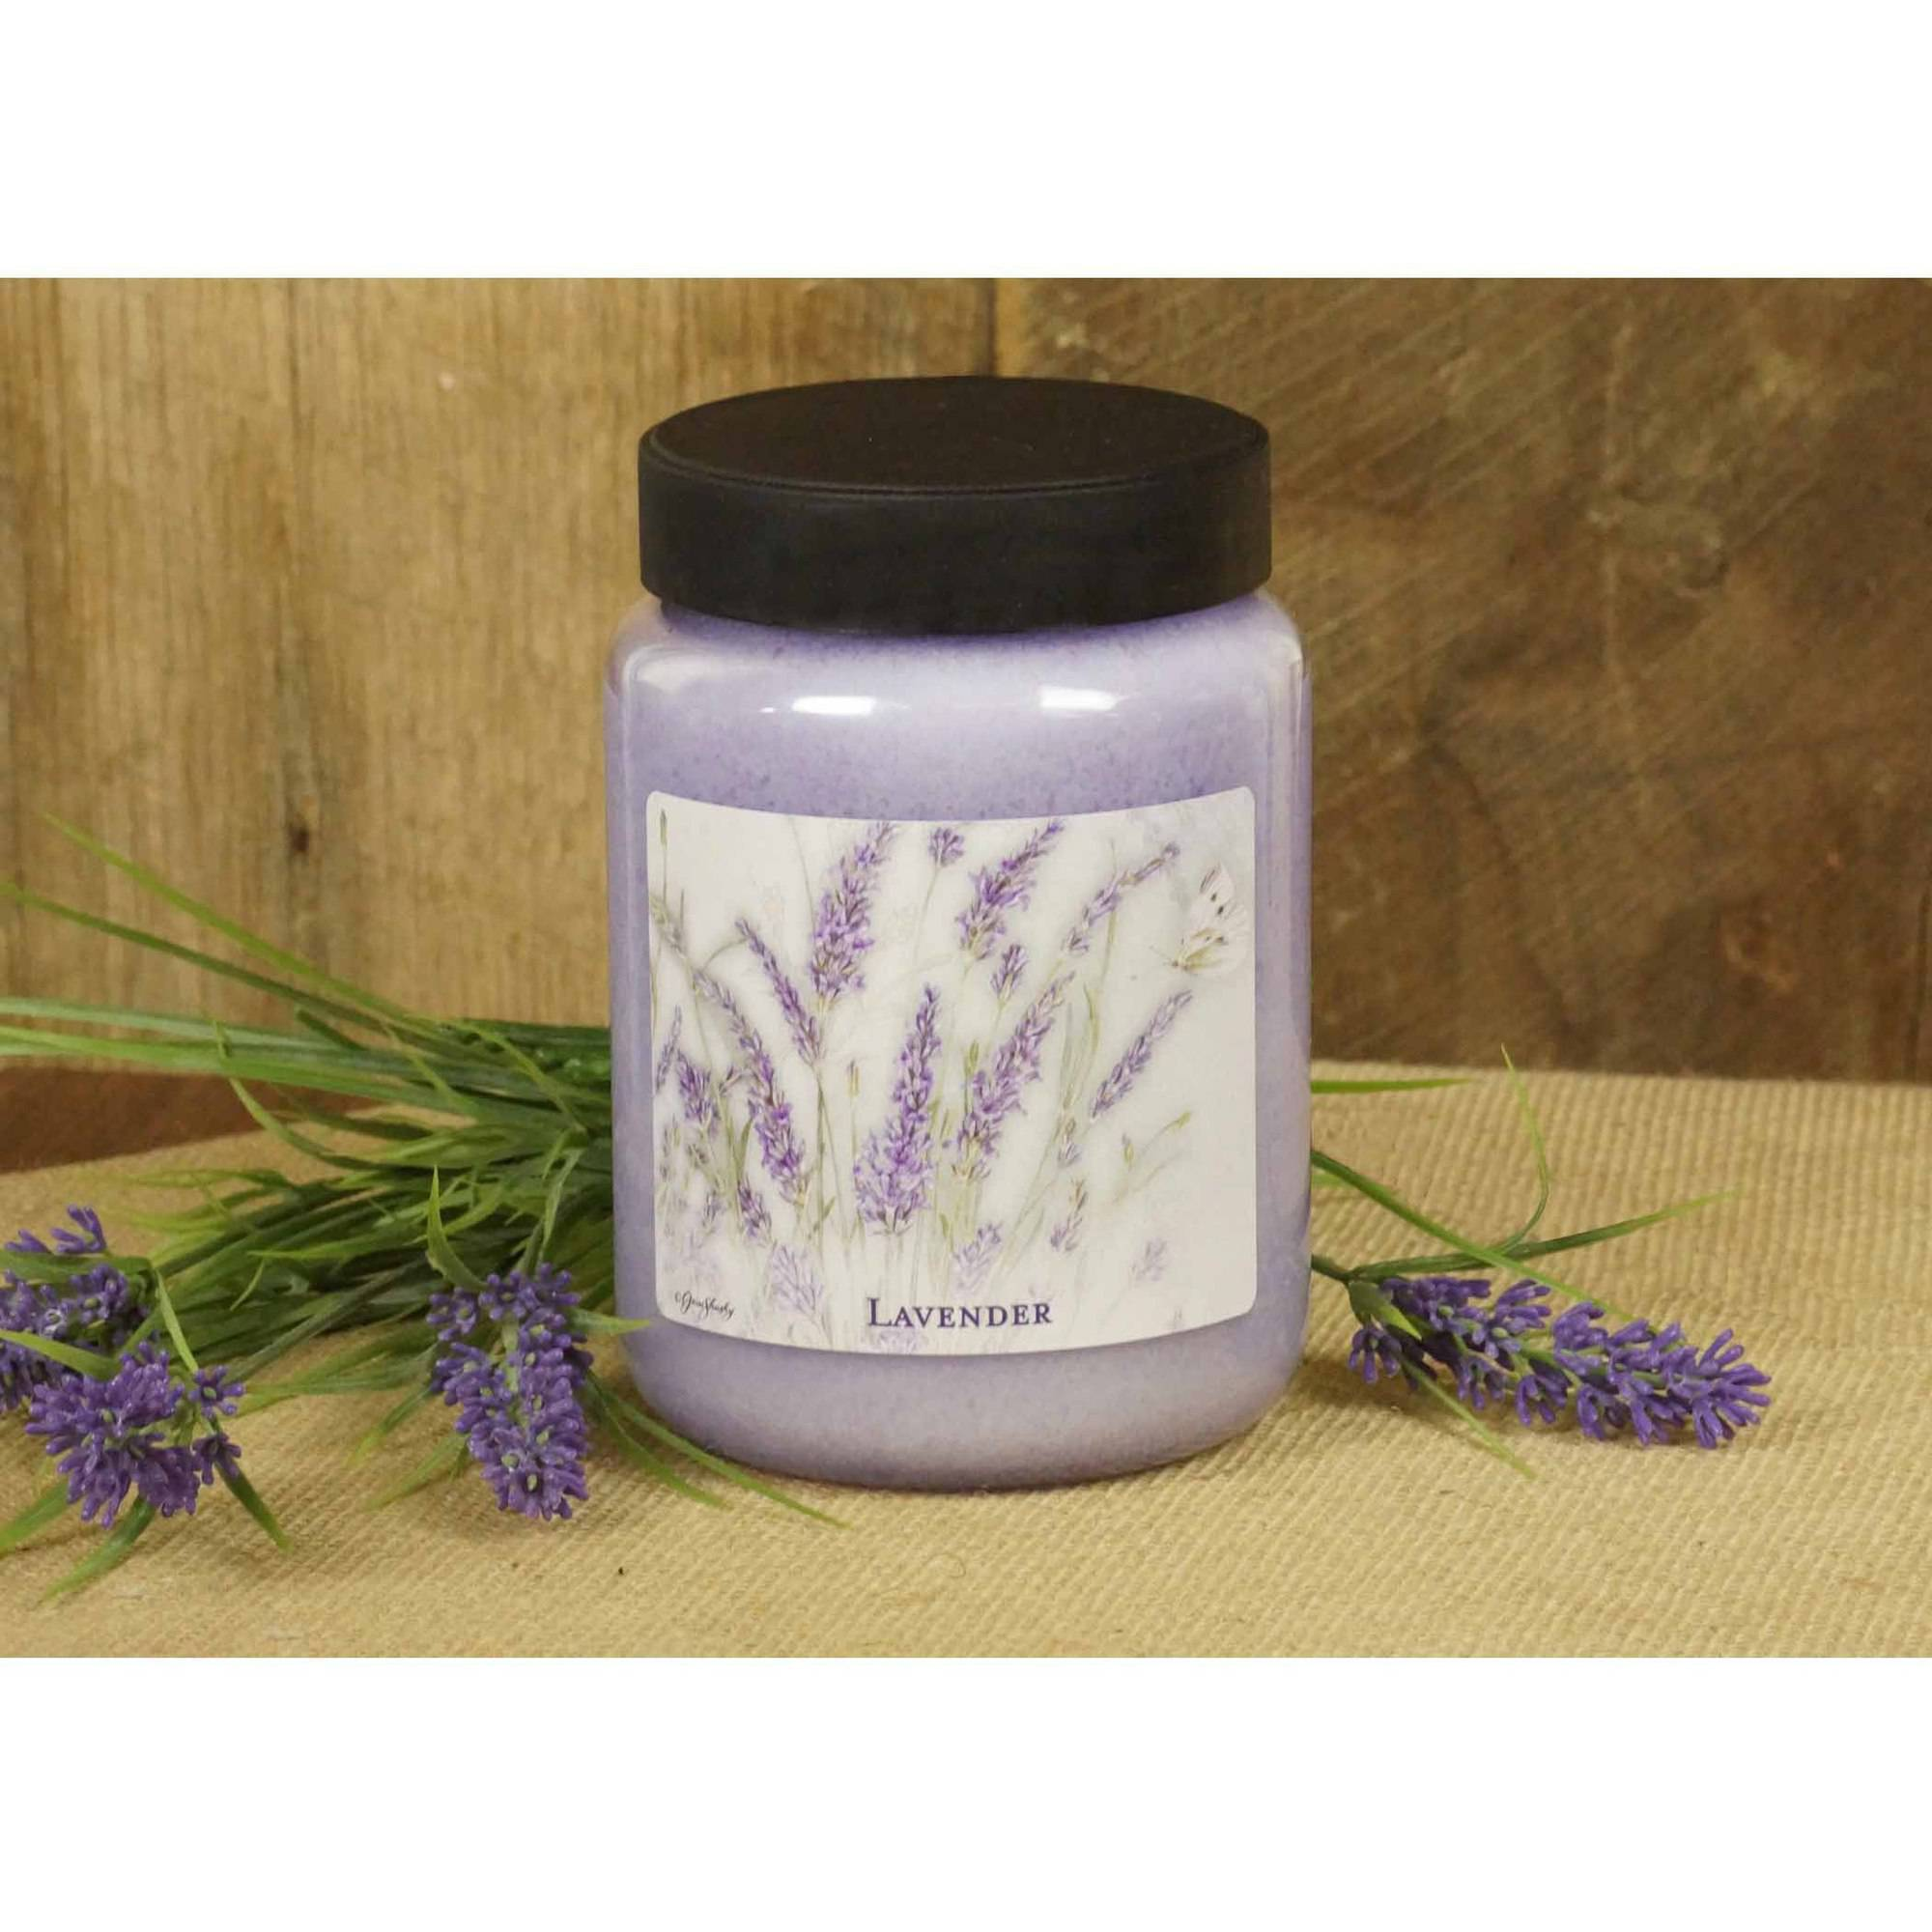 LANG Lavender 26-Ounce Jar Candle, Scented with Light Lavender and Fresh Herbs